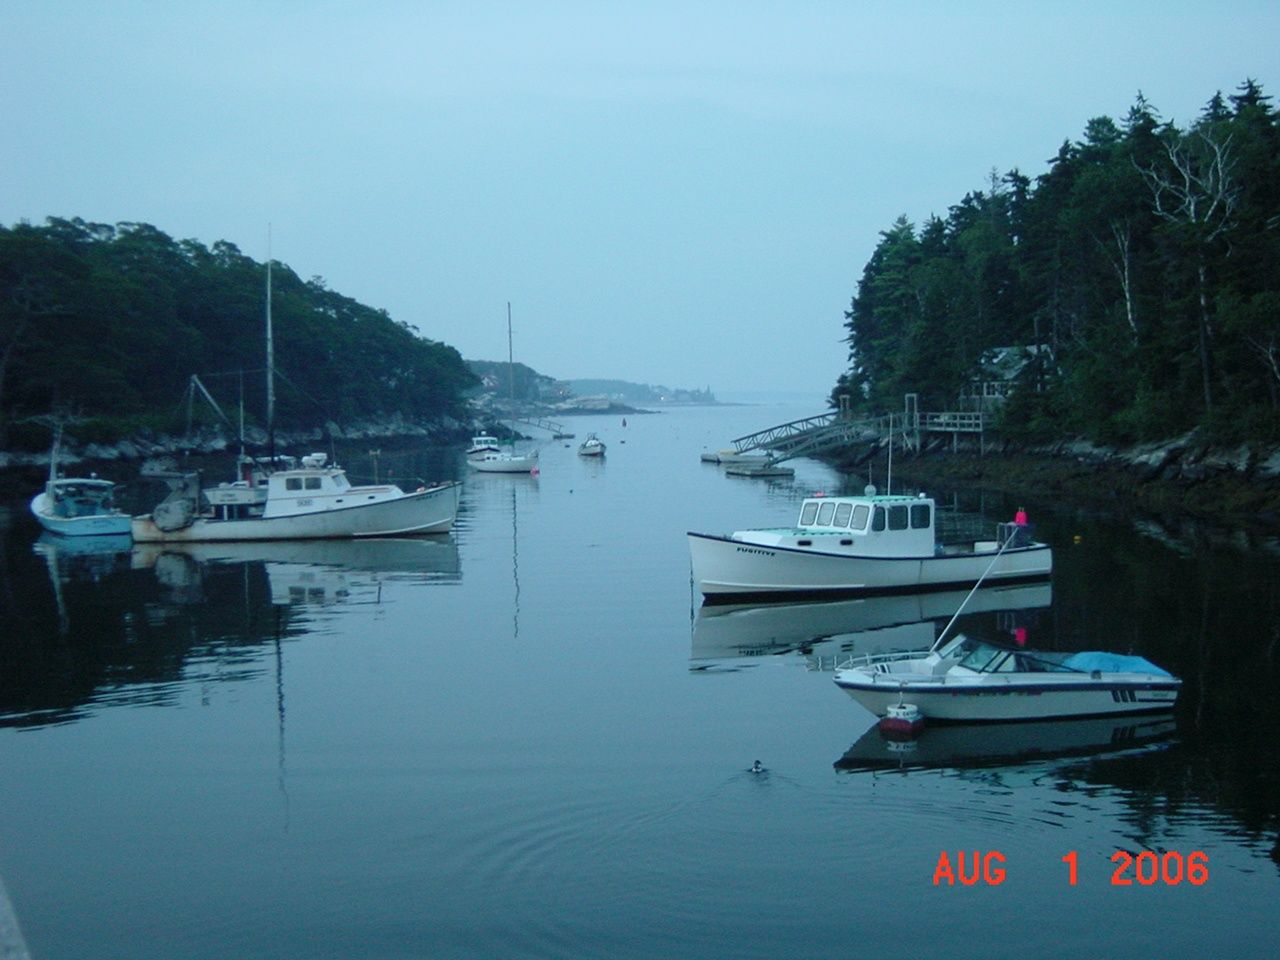 Morning in Maine....